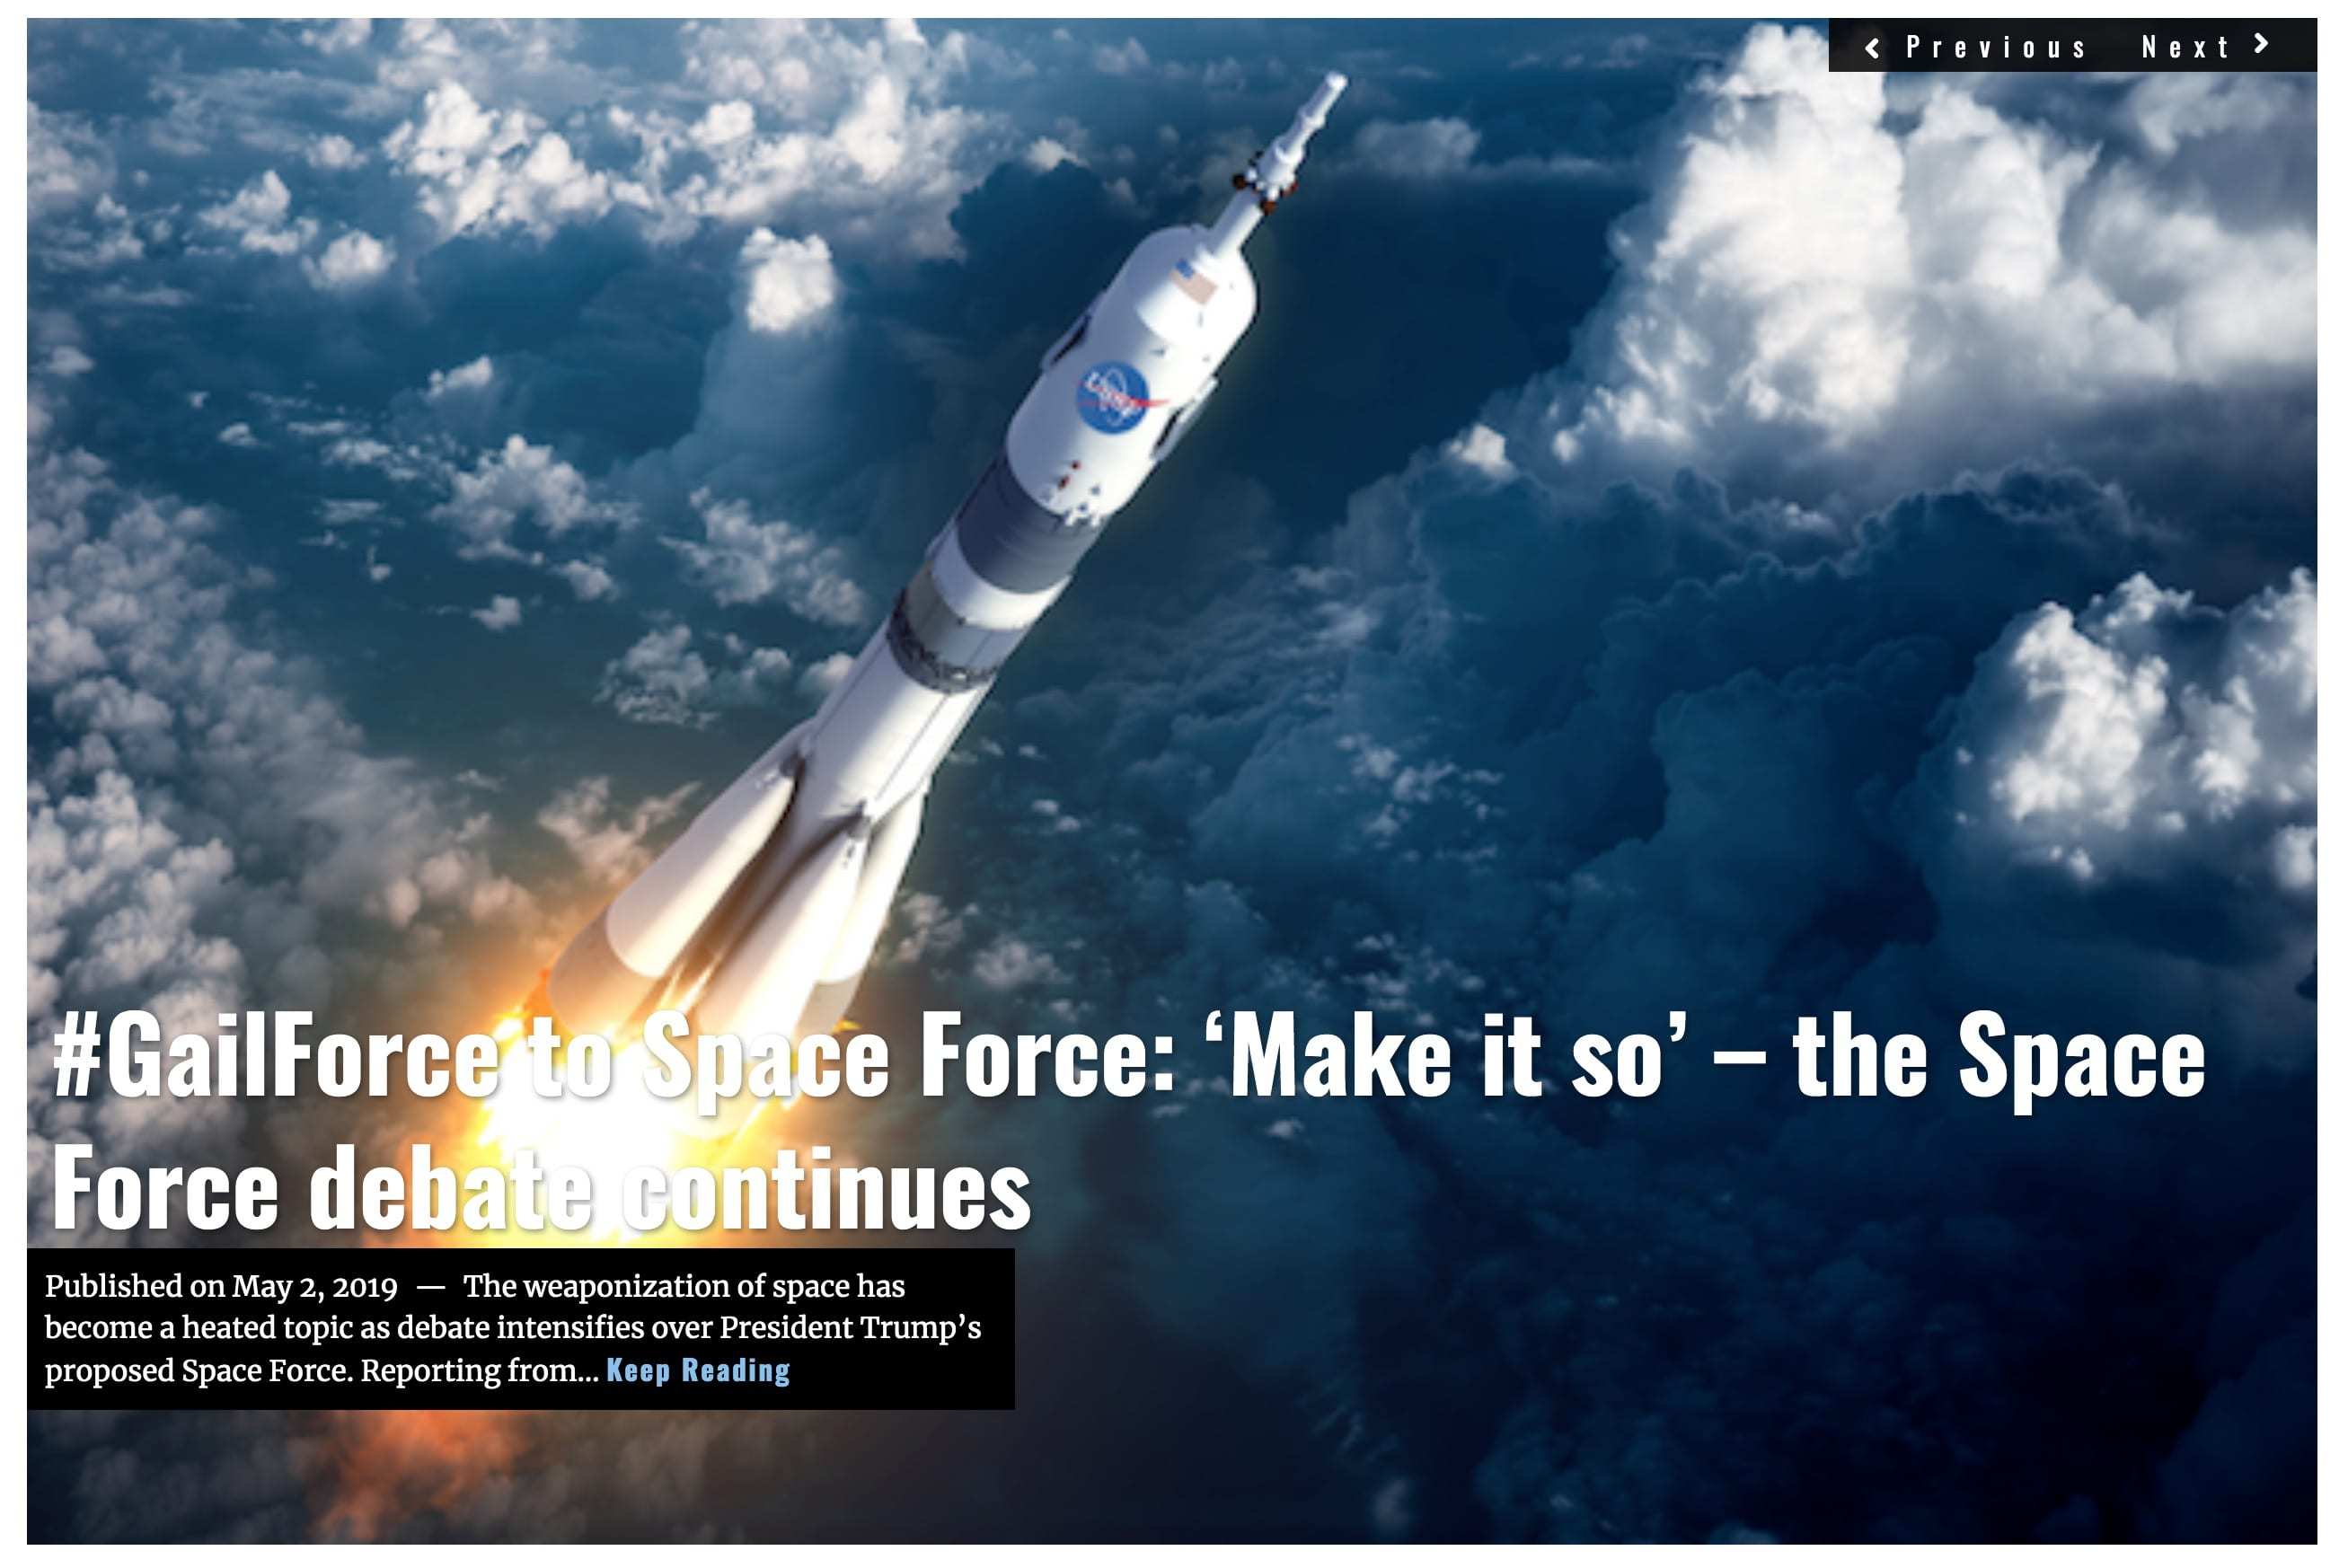 Image Lima Charlie News Headline GailForce to Space Force G. Harris MAY 2 2019